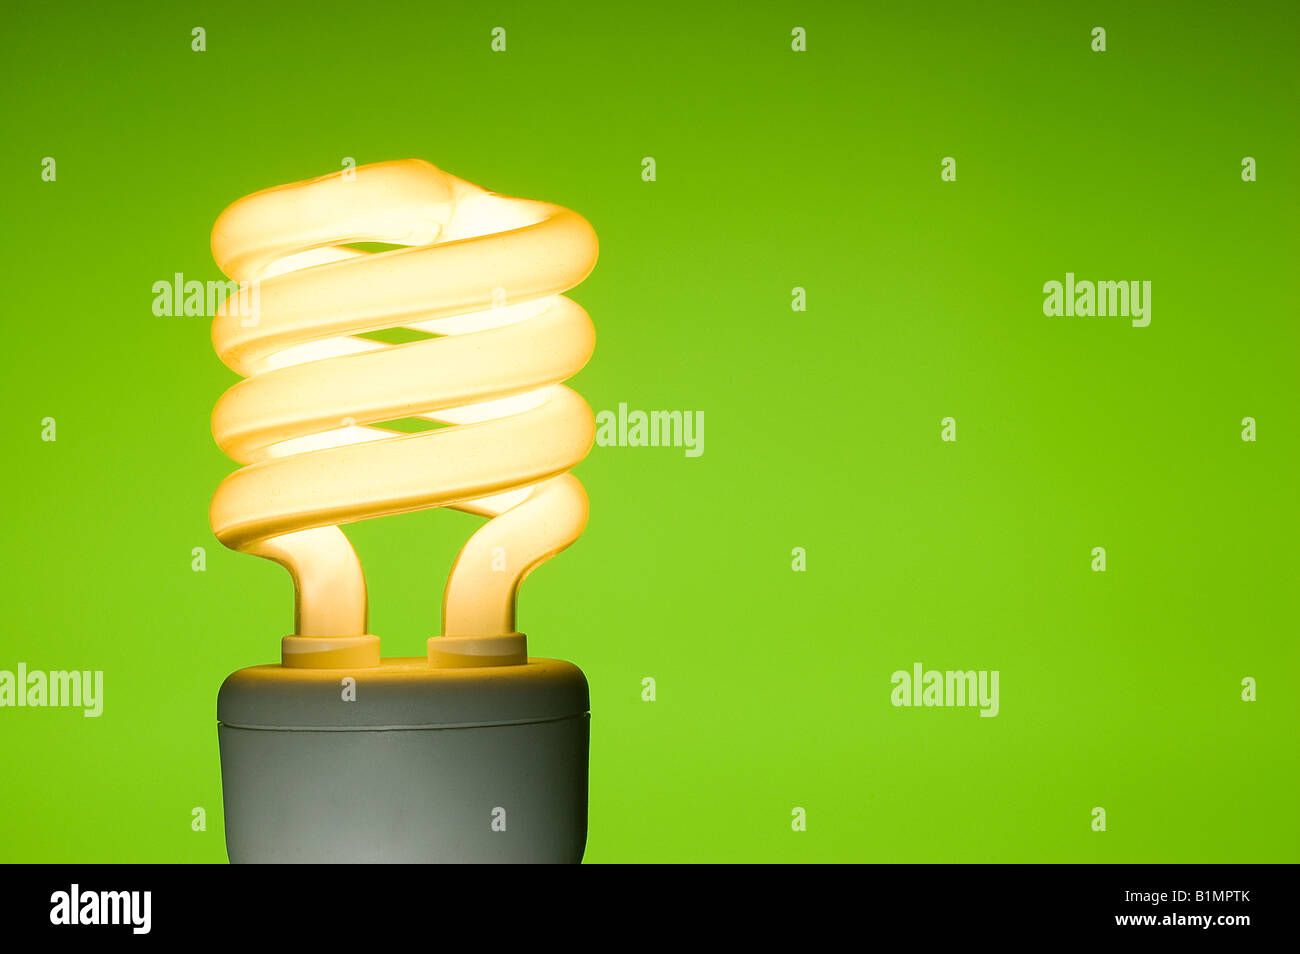 Energy saving fluorescent light bulb on green background Space for ...